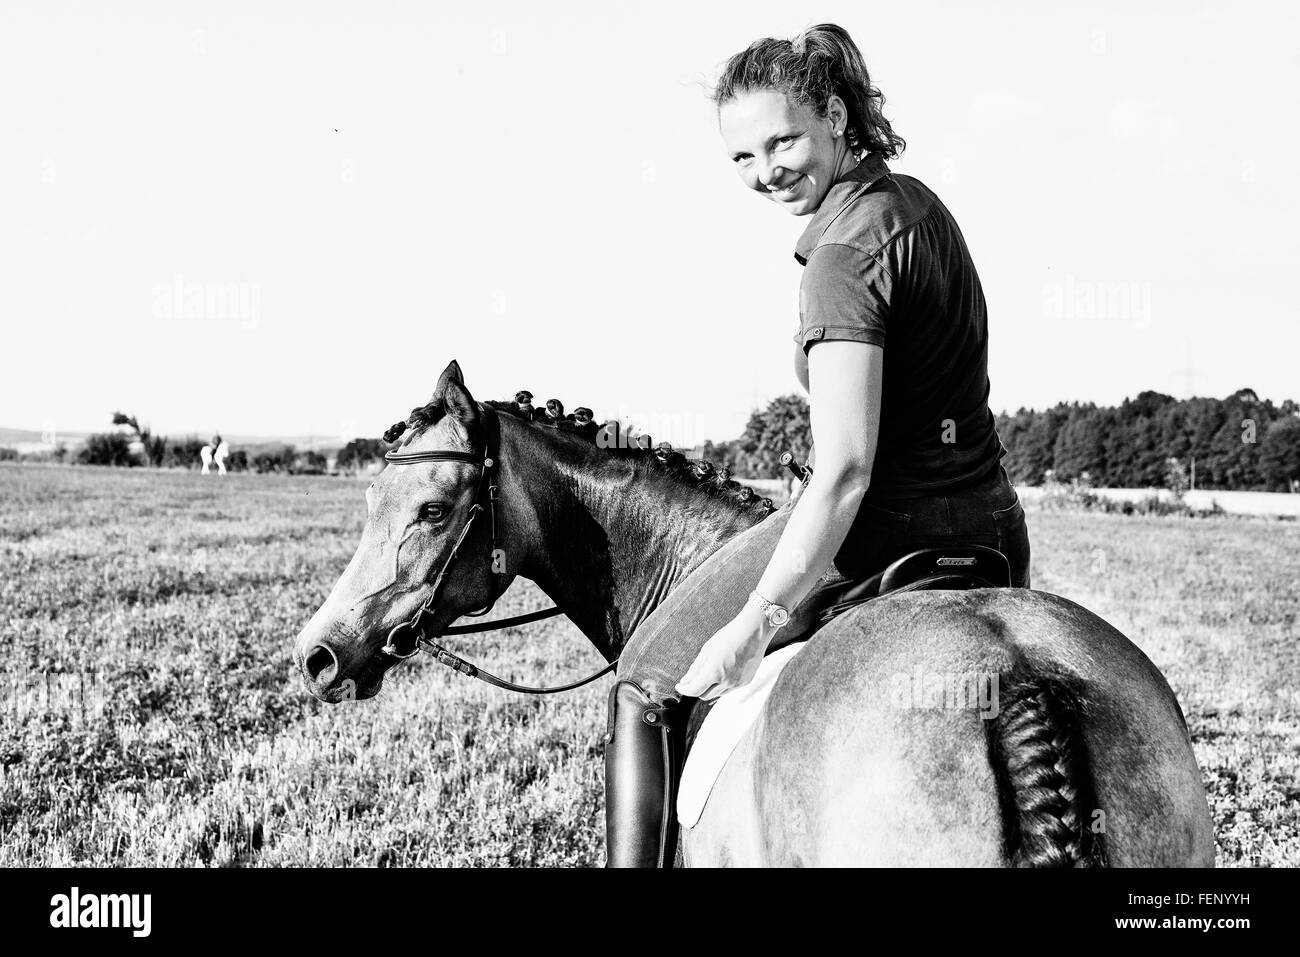 B&W portrait of woman riding horse in field and looking over her shoulder Stock Photo